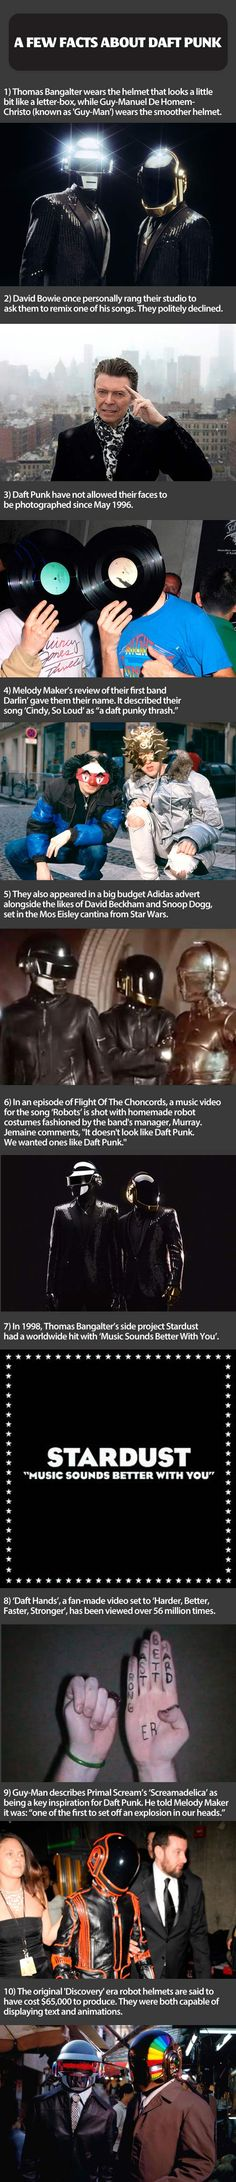 funny-facts-Daft-Punk-compilation